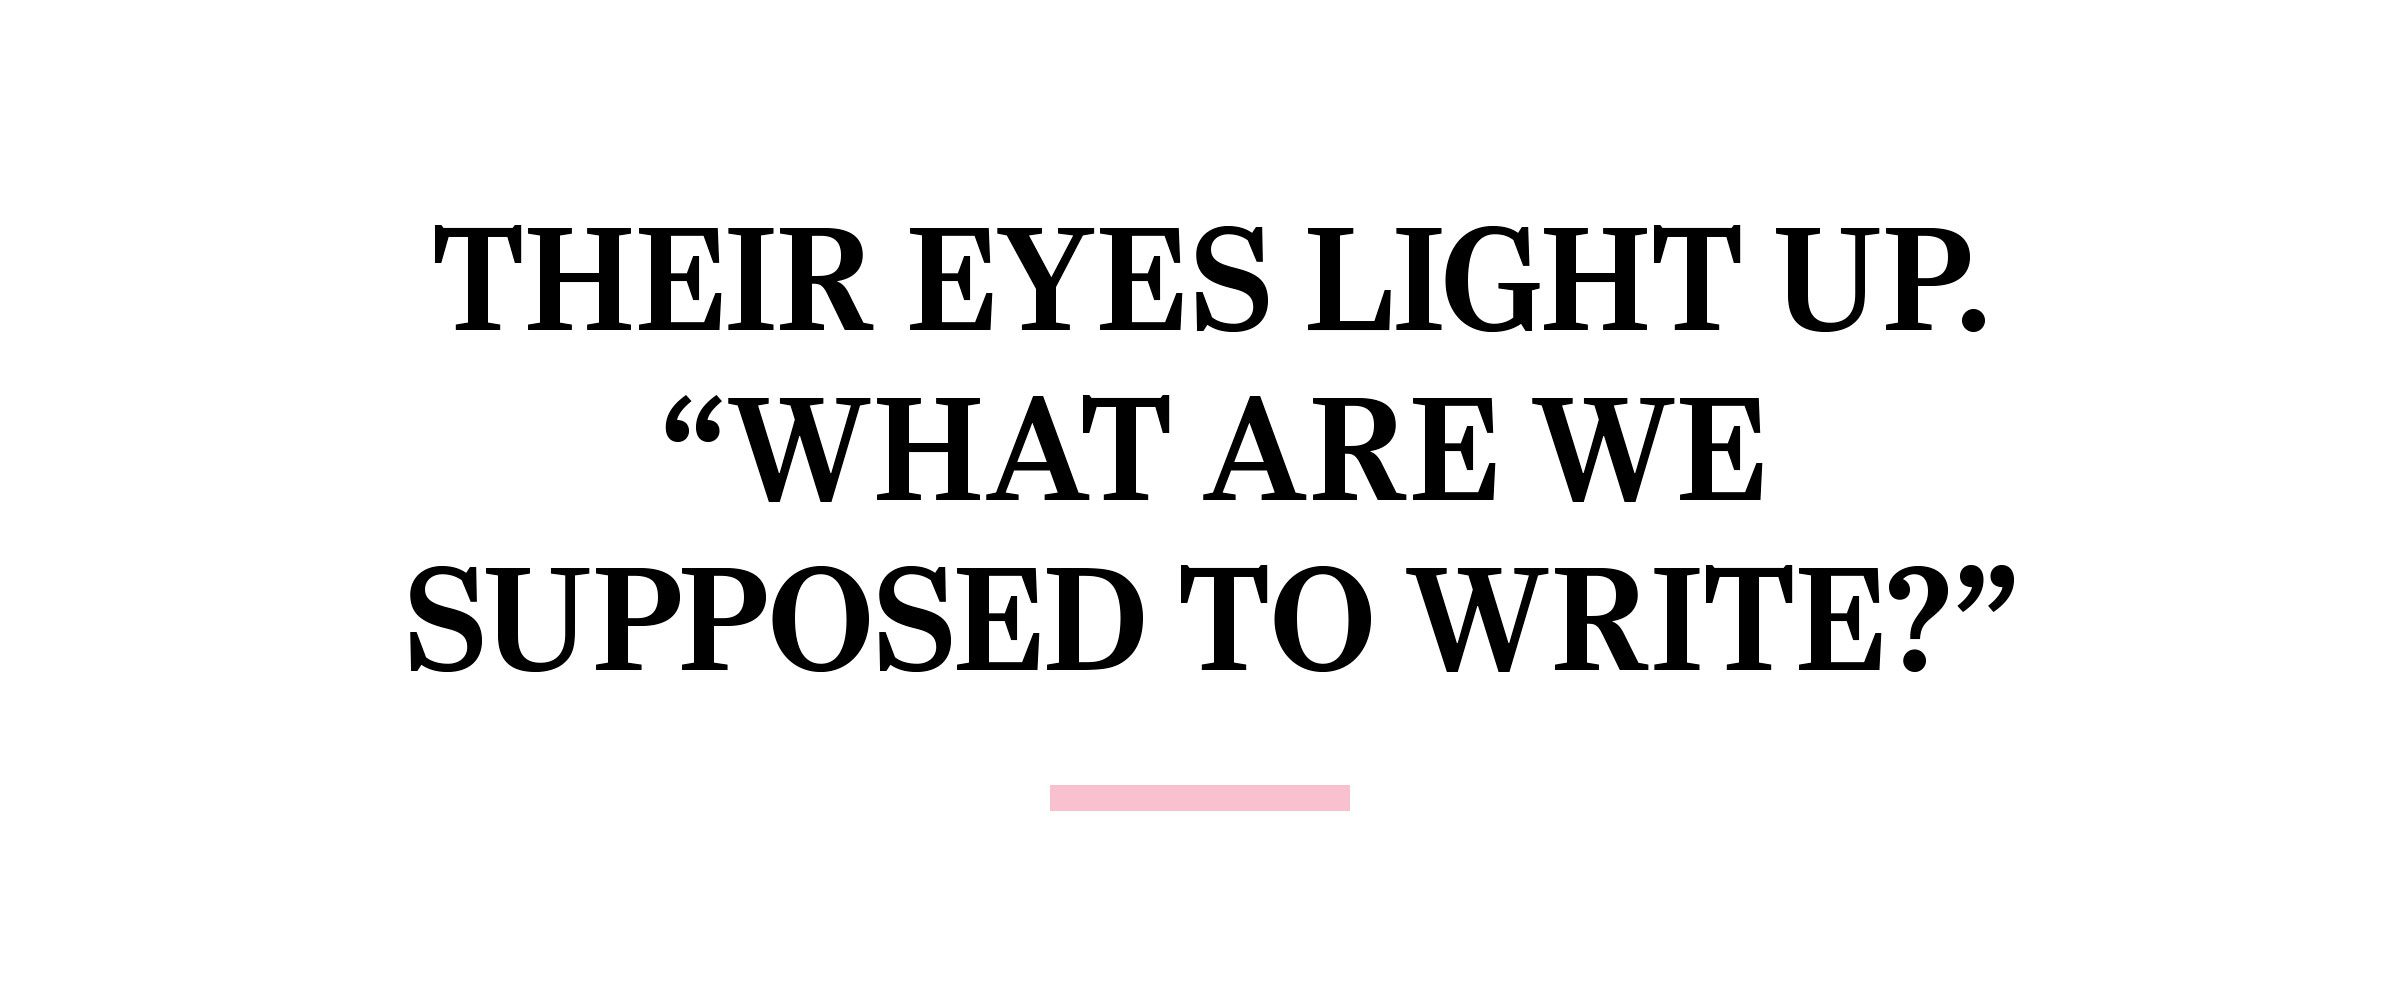 """text: Their eyes light up. """"What are we supposed to write?"""""""